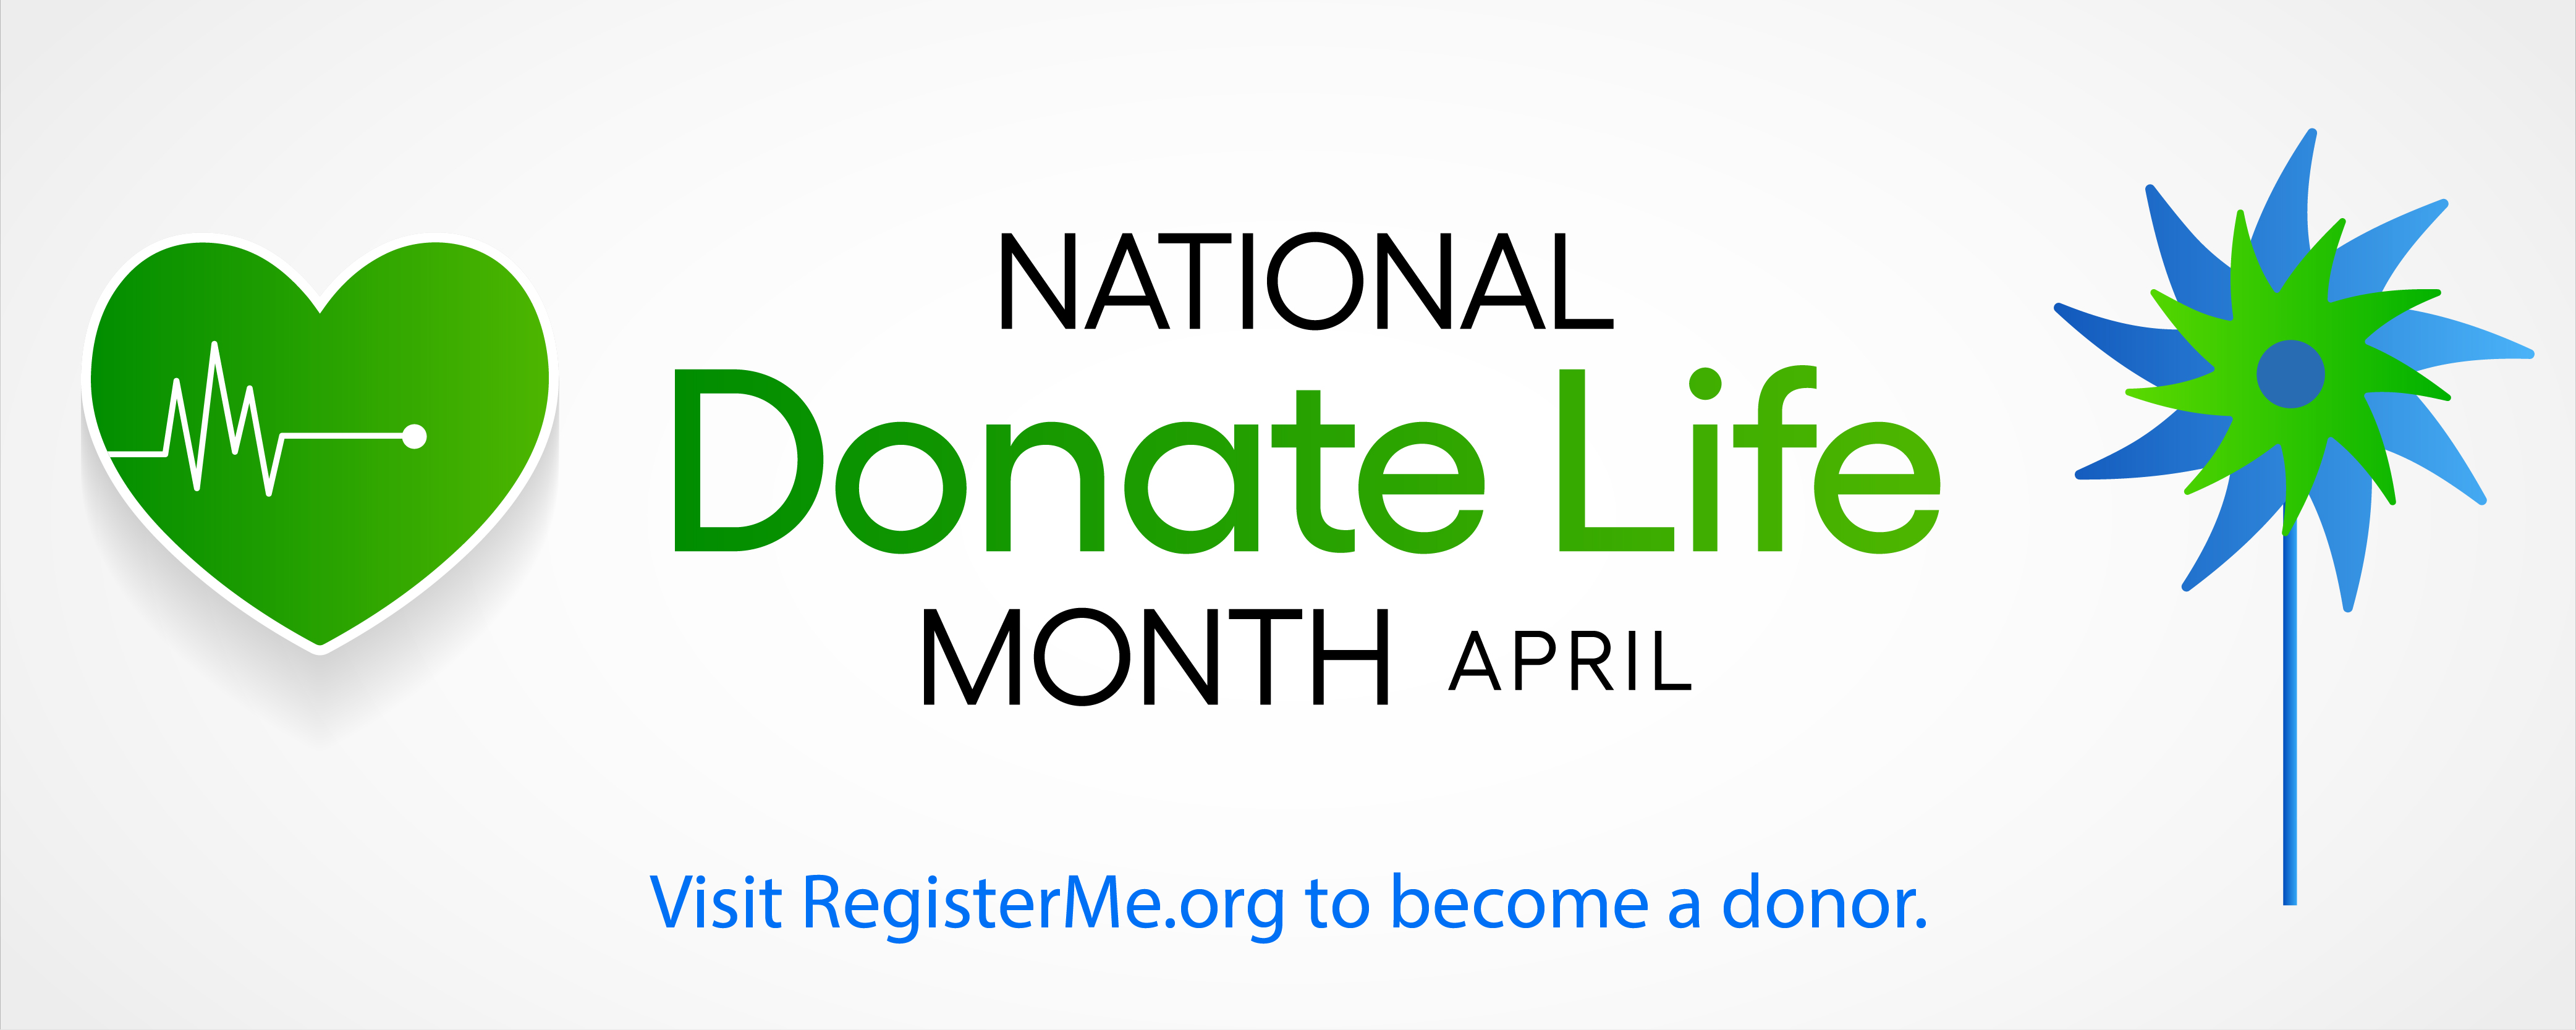 Click Here to Register to become a donor!